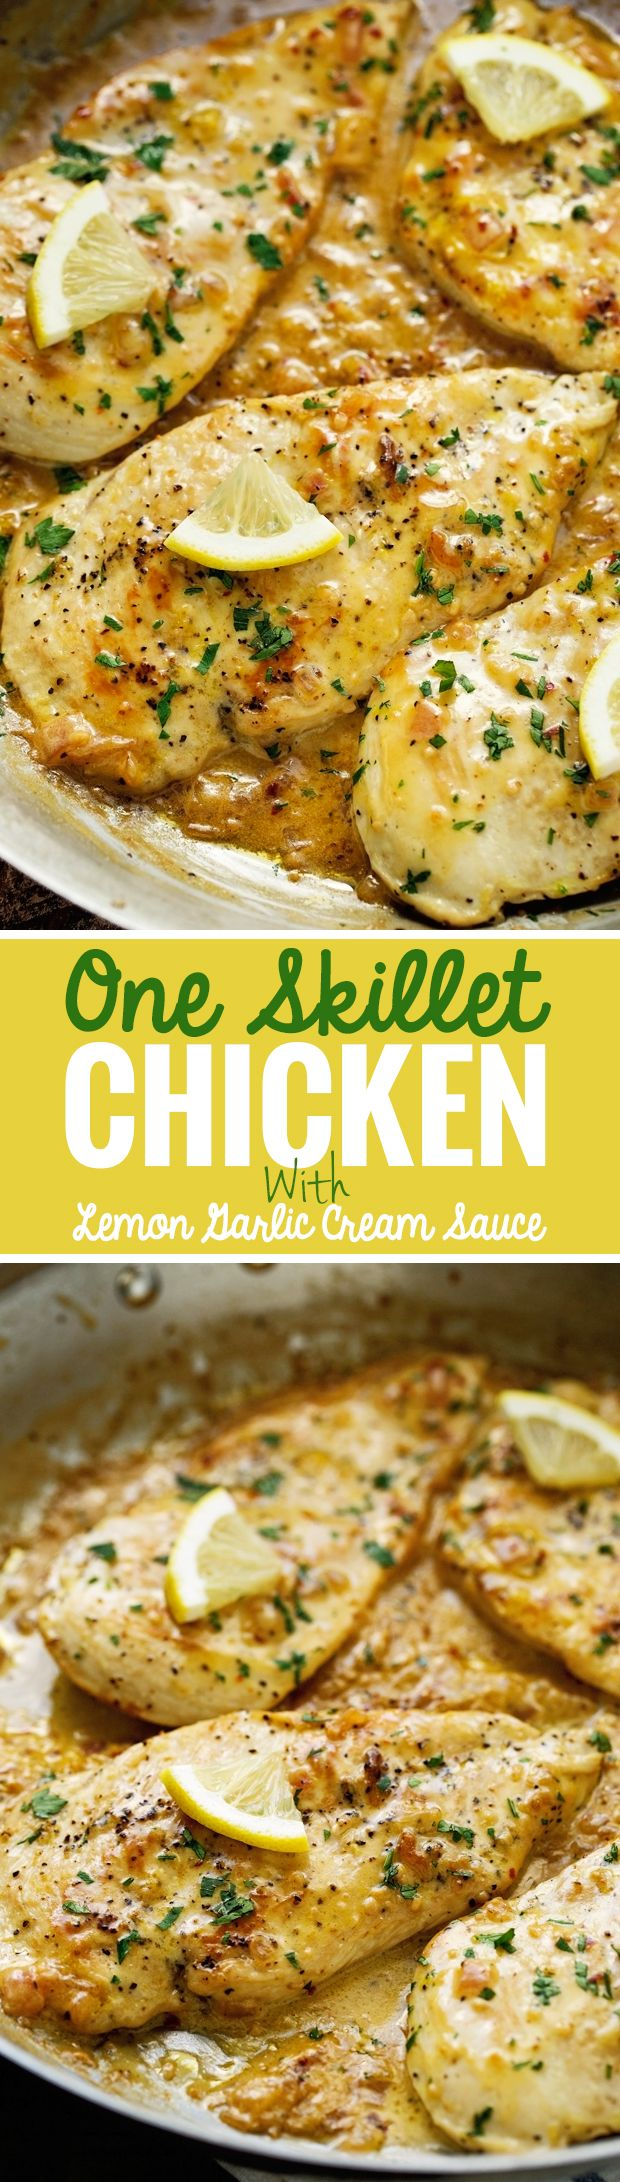 angel    with of  skilletchicken A over  oneskilletchicken Sauce jordans  www followerr net      in Chicken Lemon  s Cream bed One garlic Skillet minutes pasta  a   topped Ready perfect hair are  lemonchicken